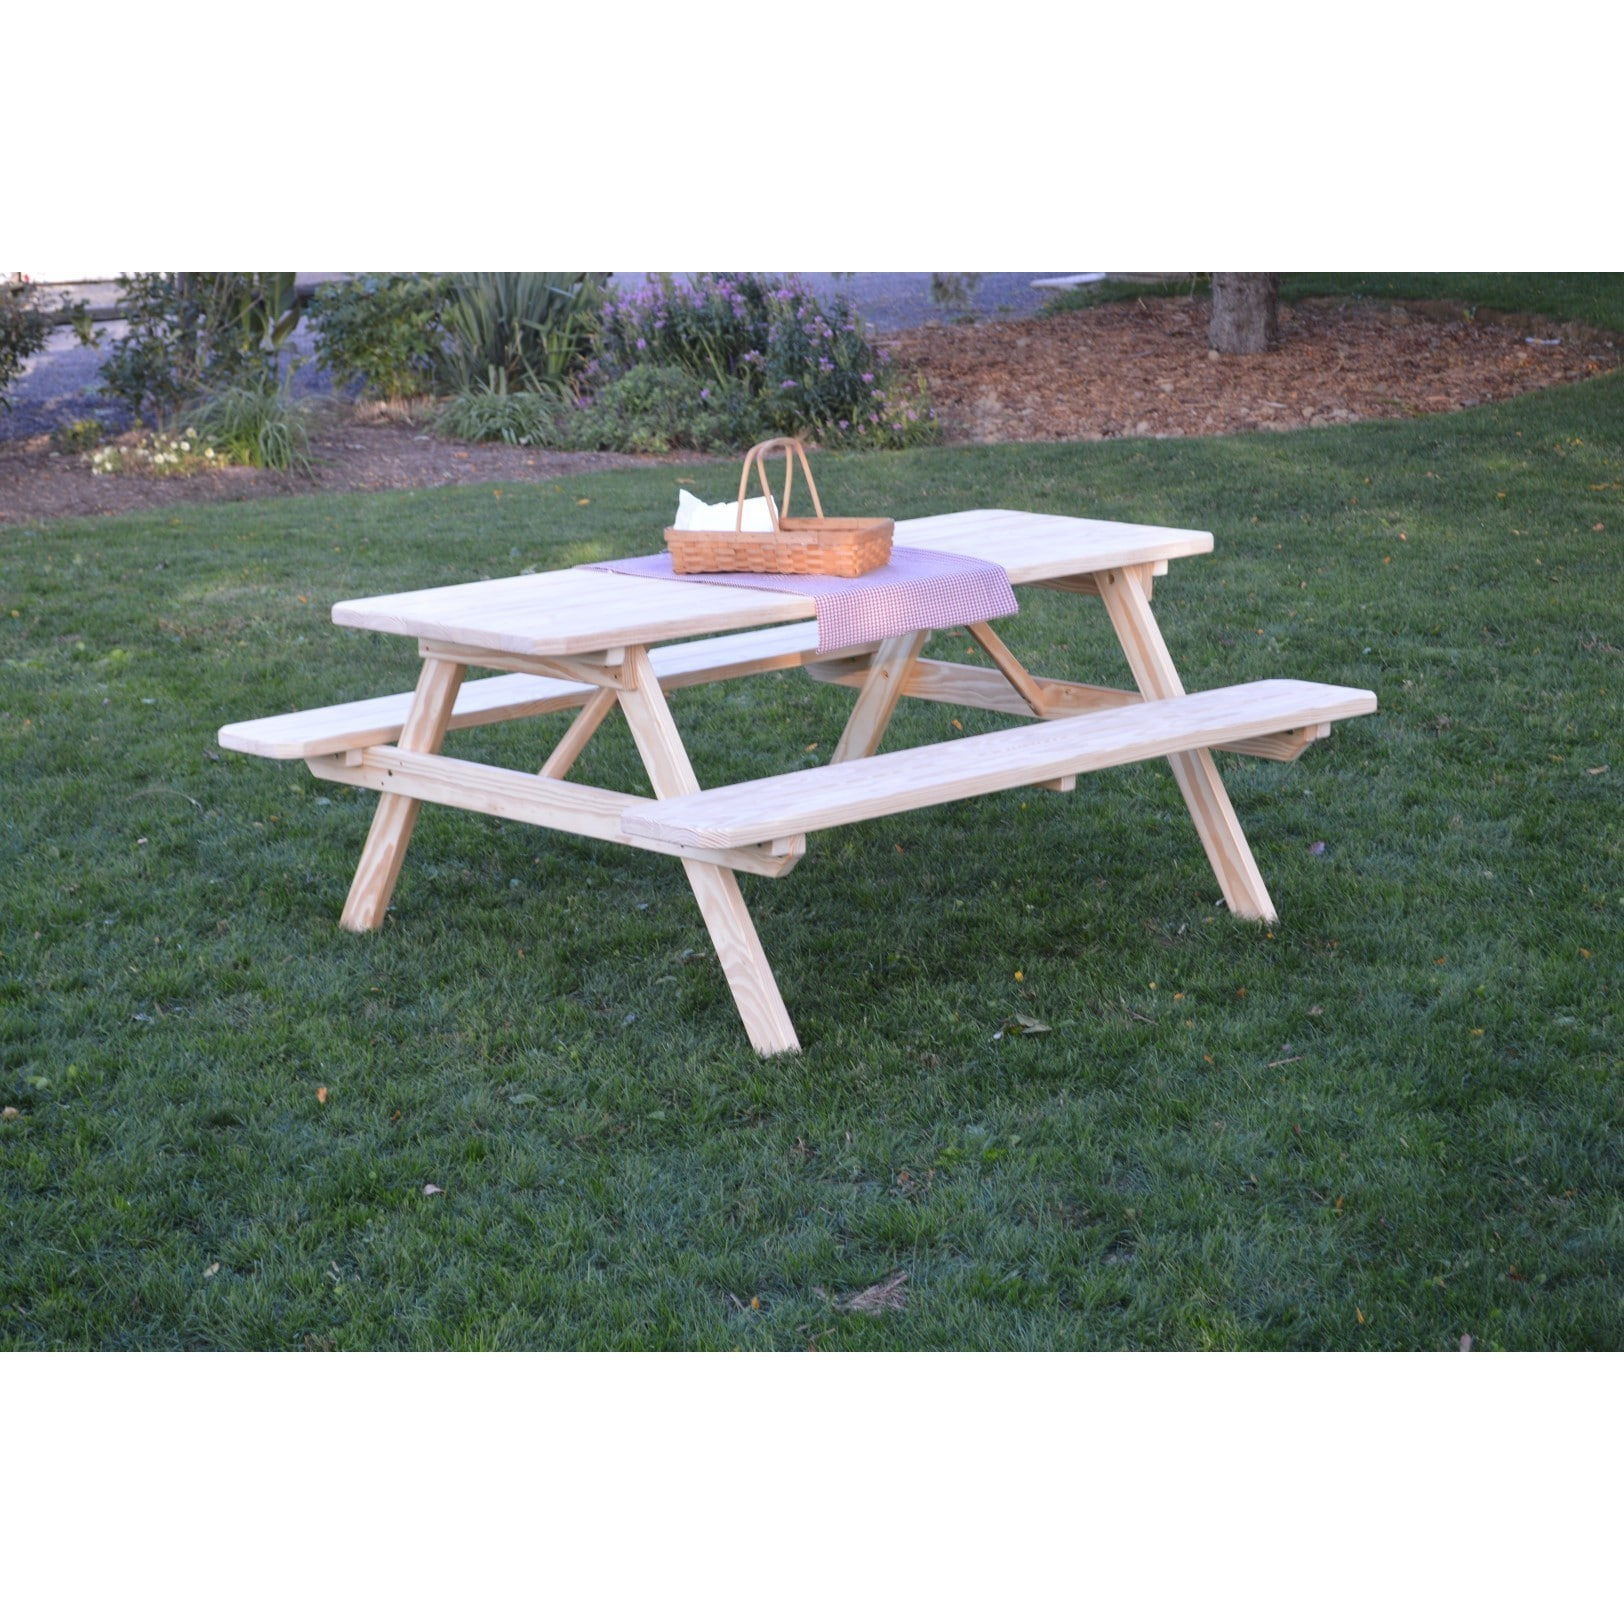 Unfinished Picnic Table With Attached Benches In Pressure Treated Pine